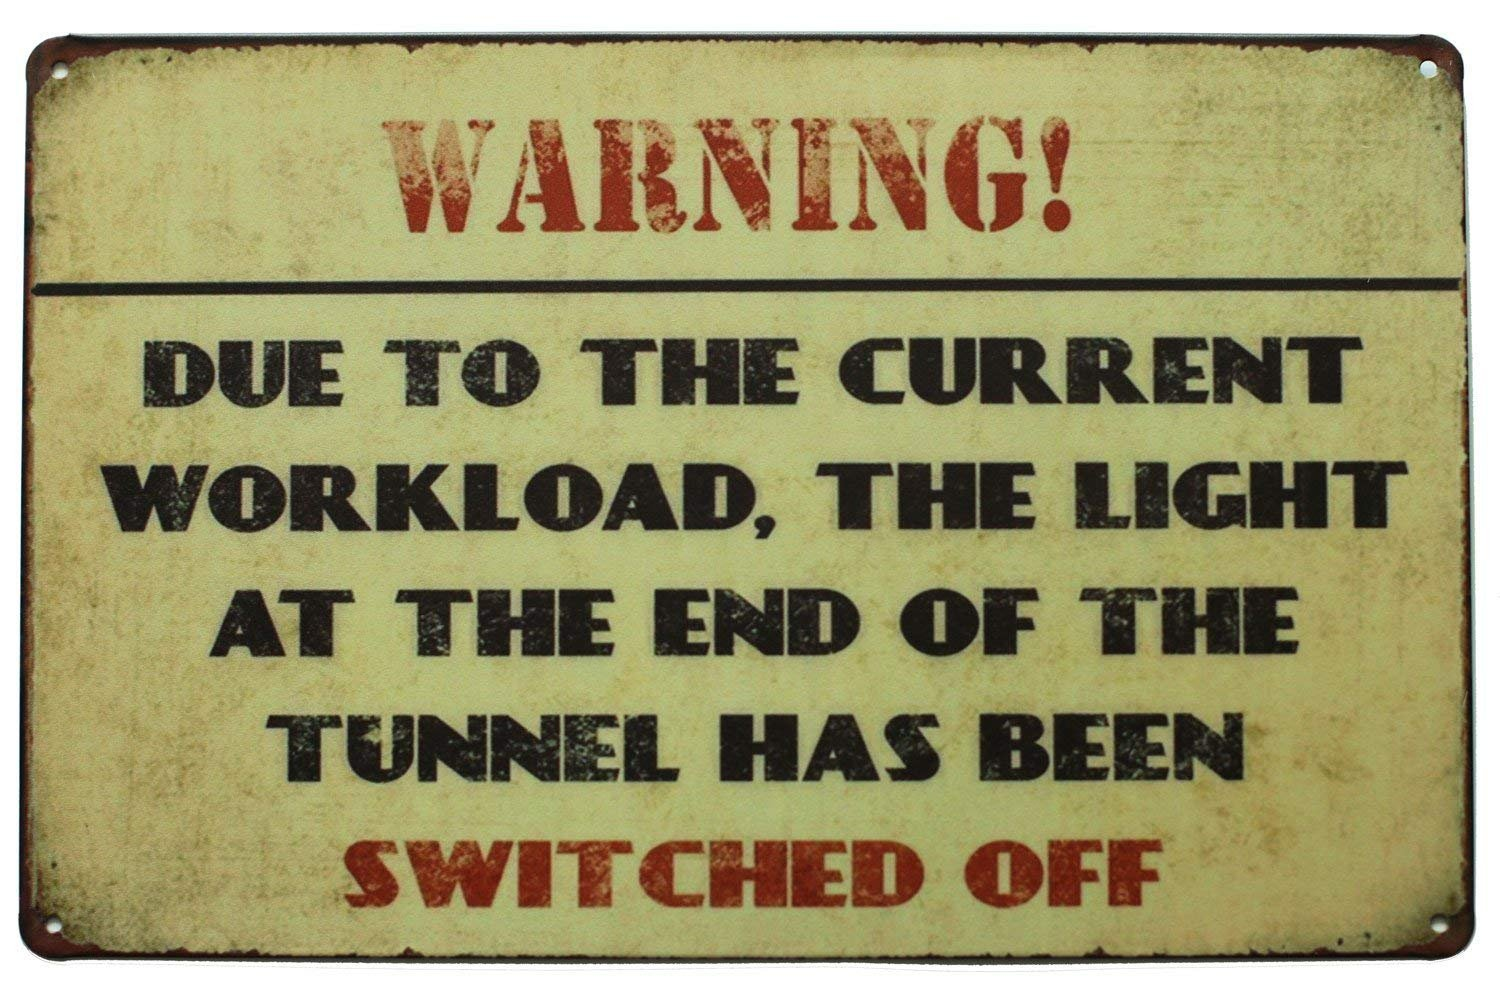 Metal Tin Sign SUMIK Warning Due to The Current Workland The Light at The End of The Tunnel Has Been Switched Off Vintage Art Poster Plaque Den Man Cave Yard Home Wall Decor